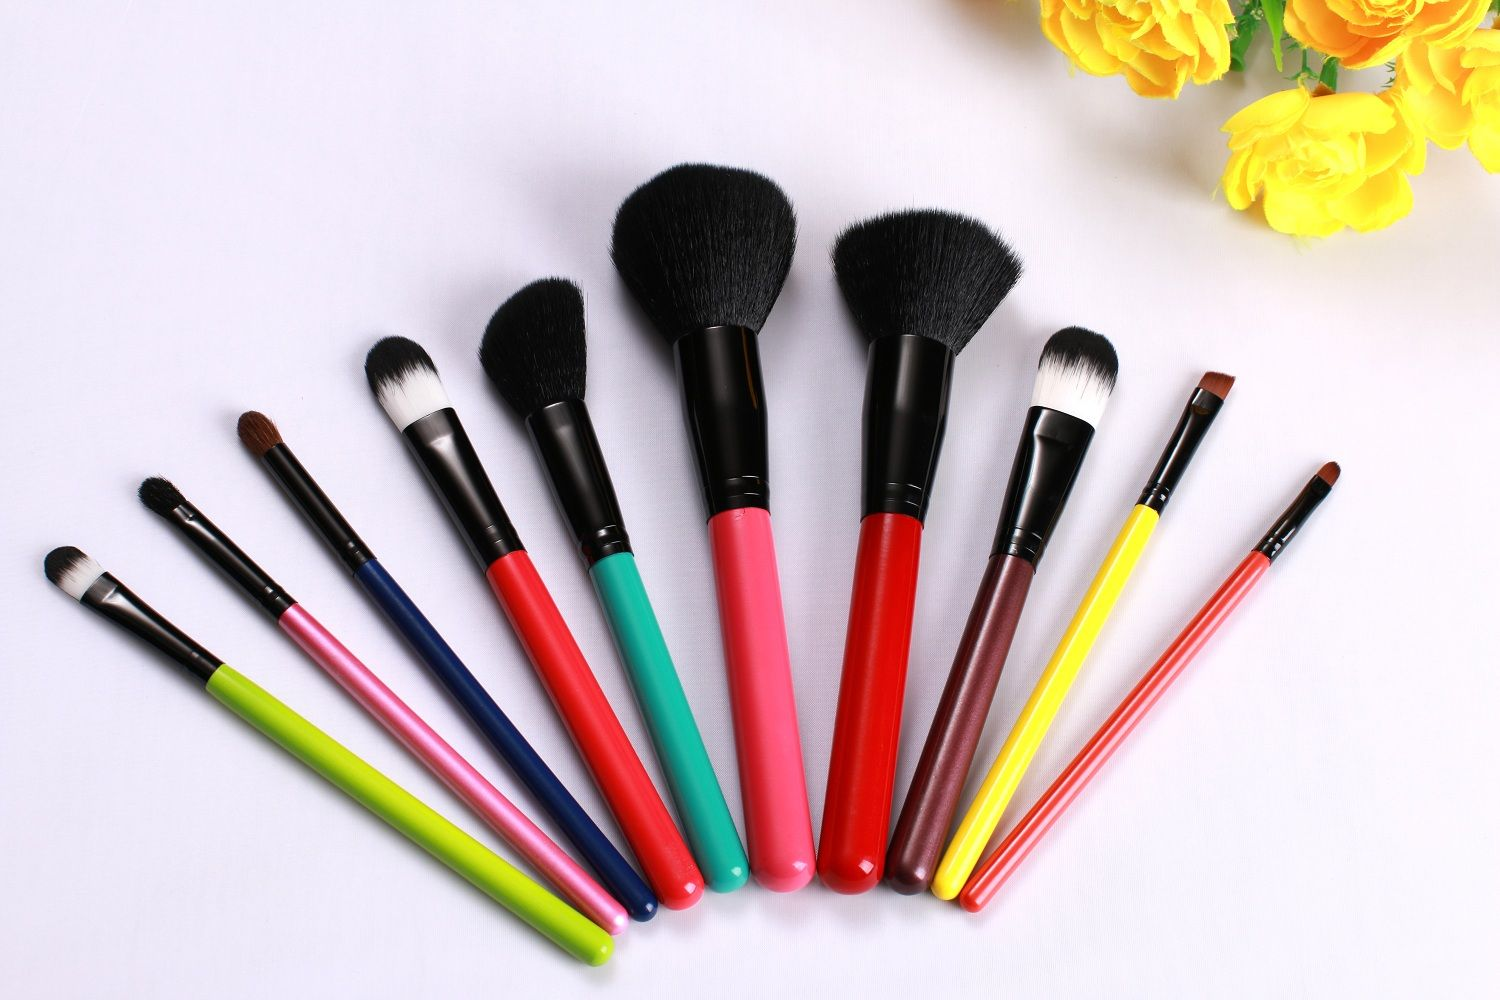 10Pcs Amazion Rainbow Makeup Brushes for FACE EYE